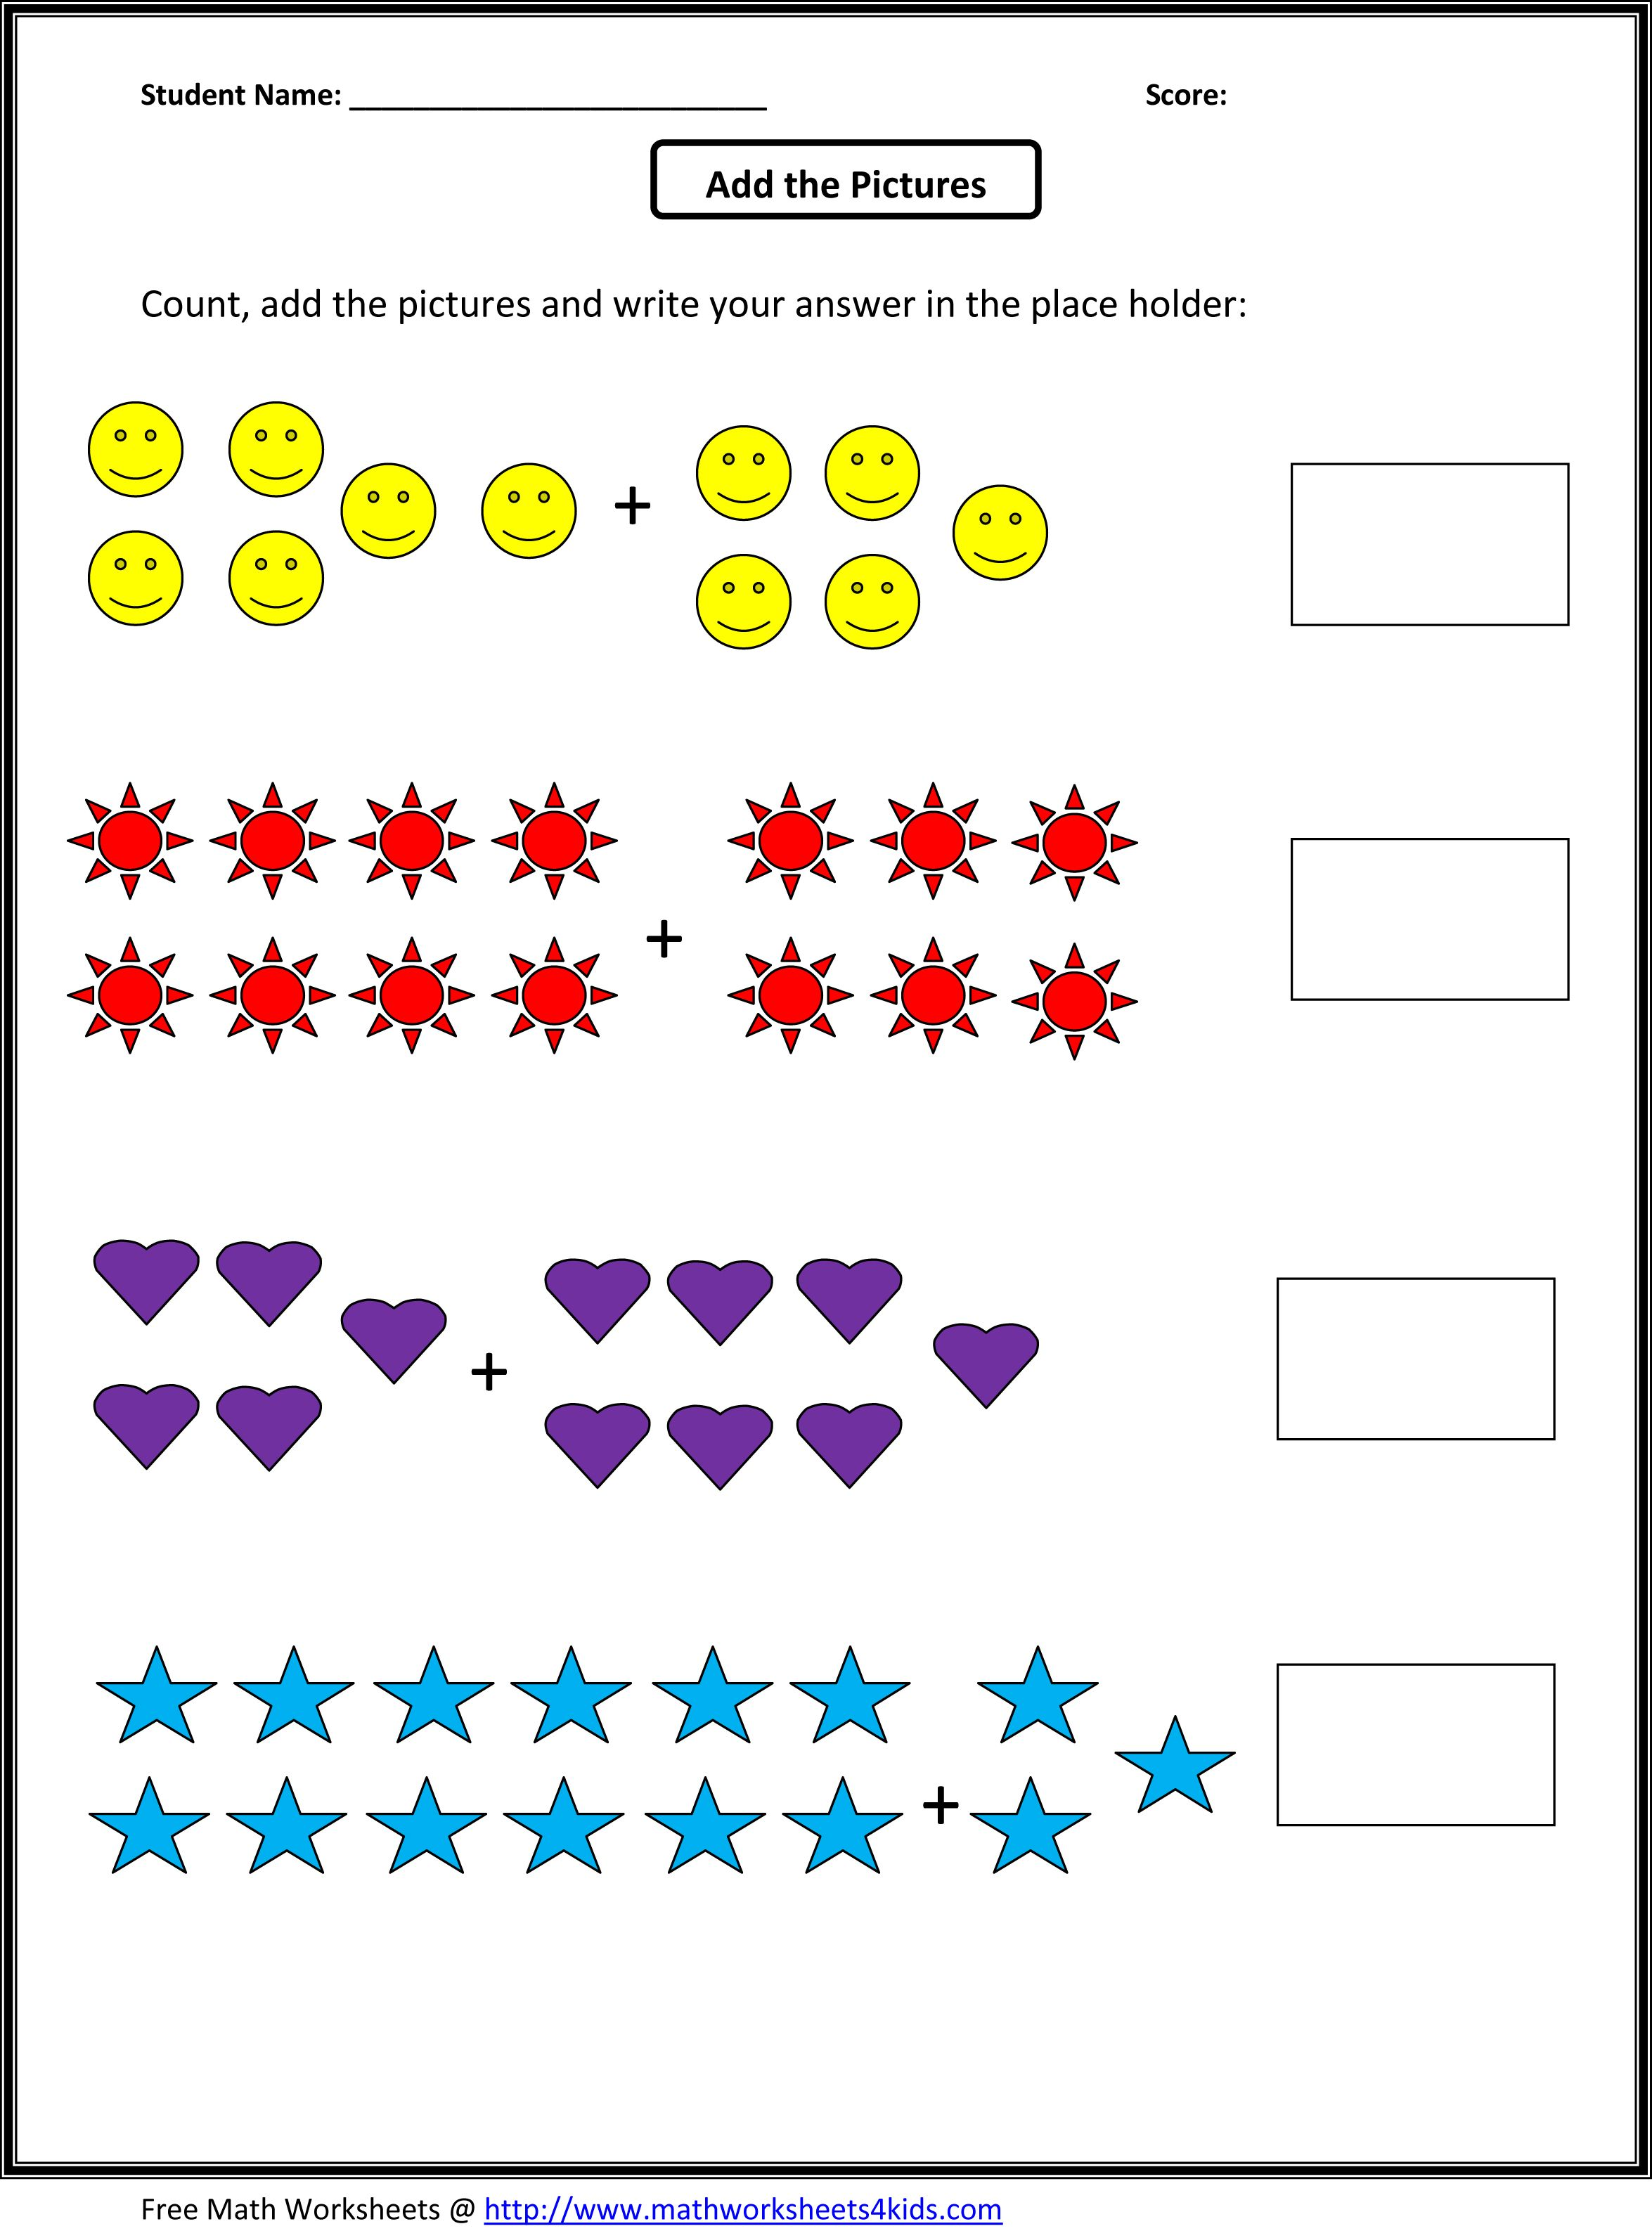 Worksheet Math Wo 78 images about projects to try on pinterest vocabulary worksheets academic and 7th grade reading